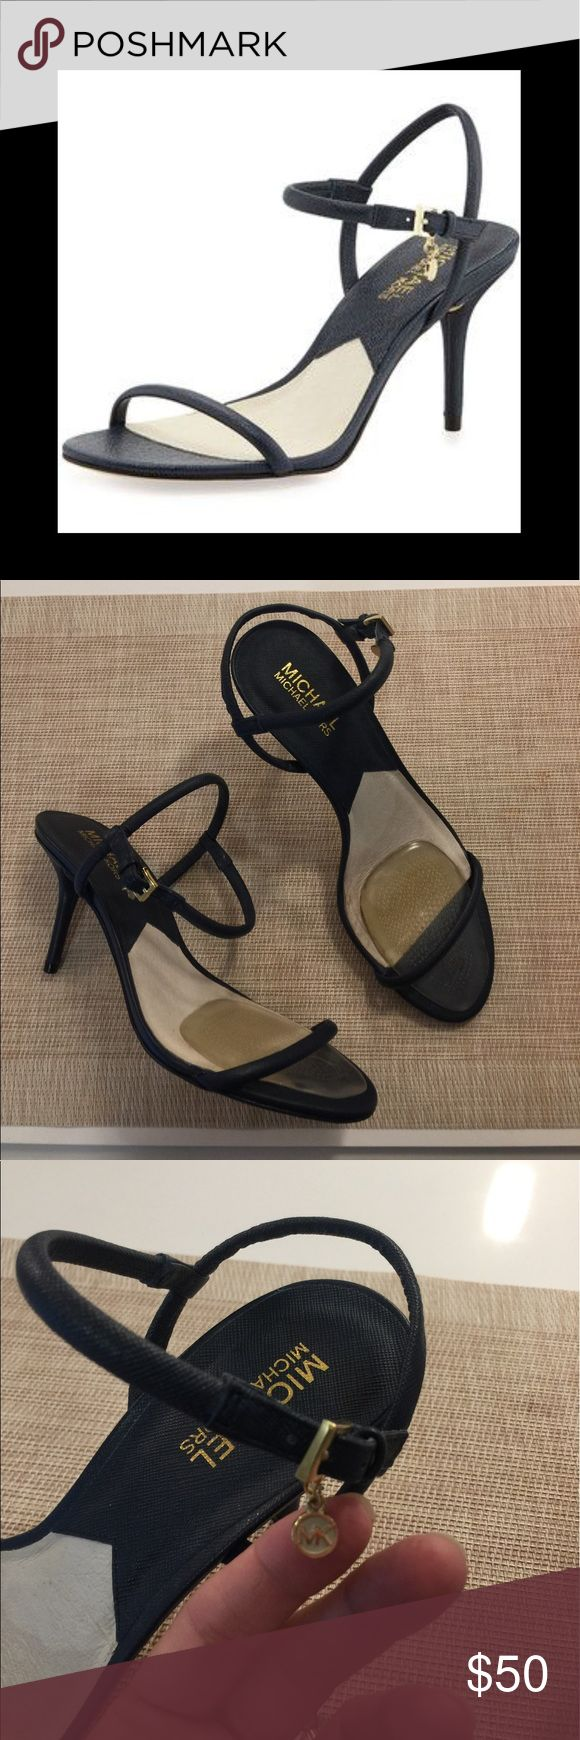 Michael Kors Heels Michael Michael Kors Carlene Navy Heels. Wore a few times, but in great condition. I added gel insole for comfort and fit. Size marked  8 1/2 but fits more like an 8. MICHAEL Michael Kors Shoes Heels